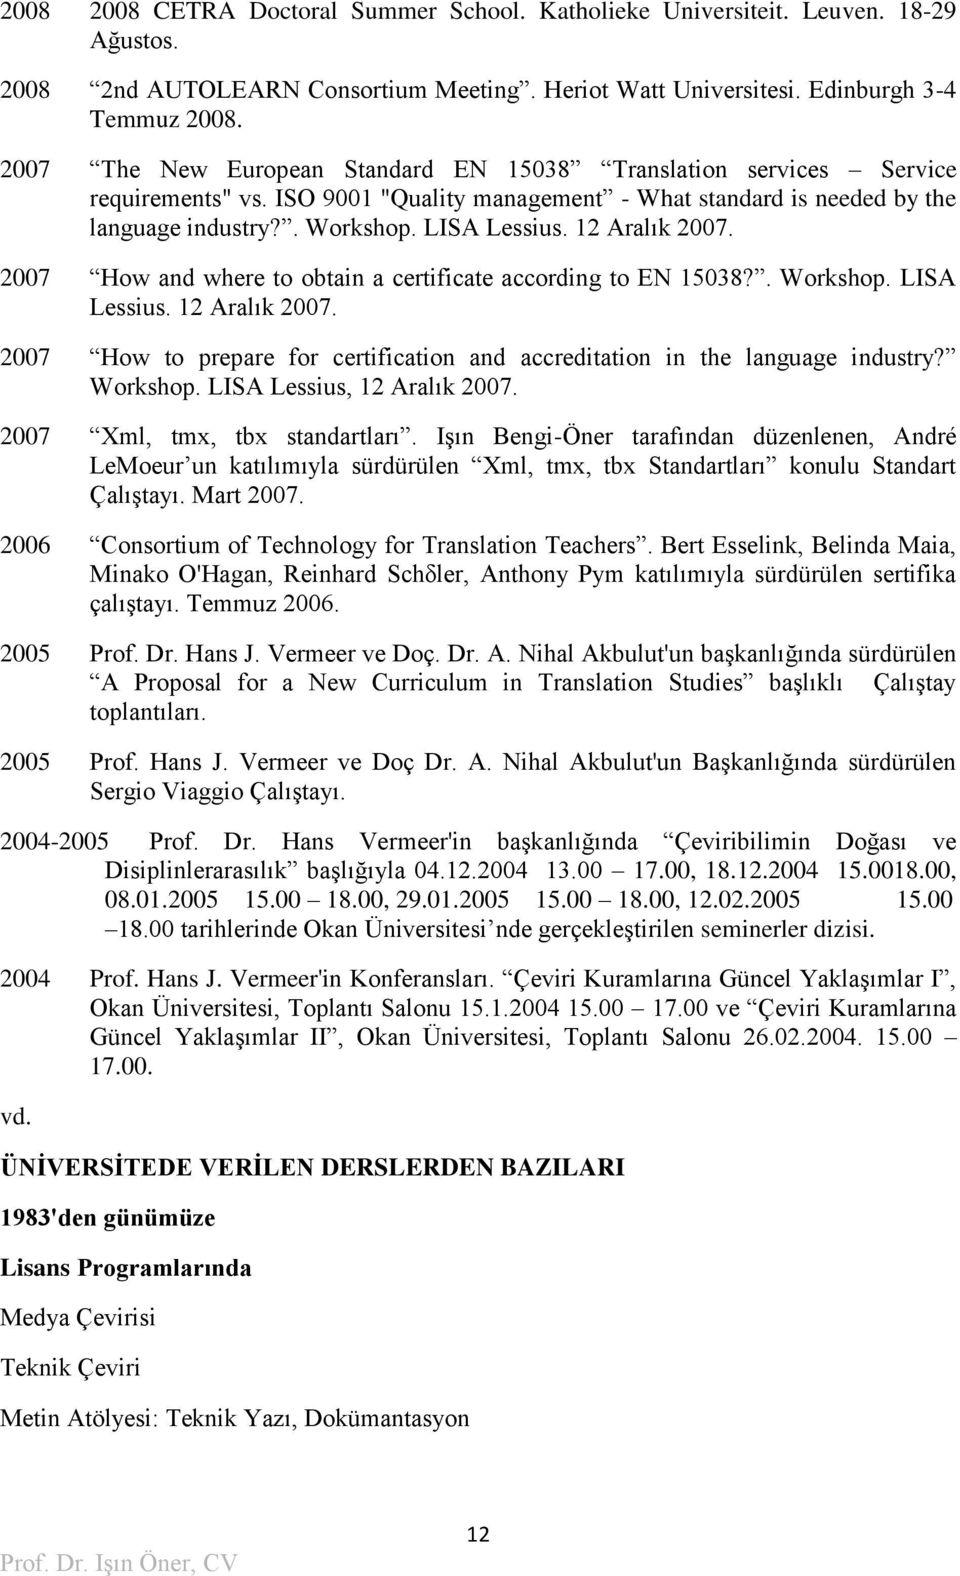 12 Aralık 2007. 2007 How and where to obtain a certificate according to EN 15038?. Workshop. LISA Lessius. 12 Aralık 2007.